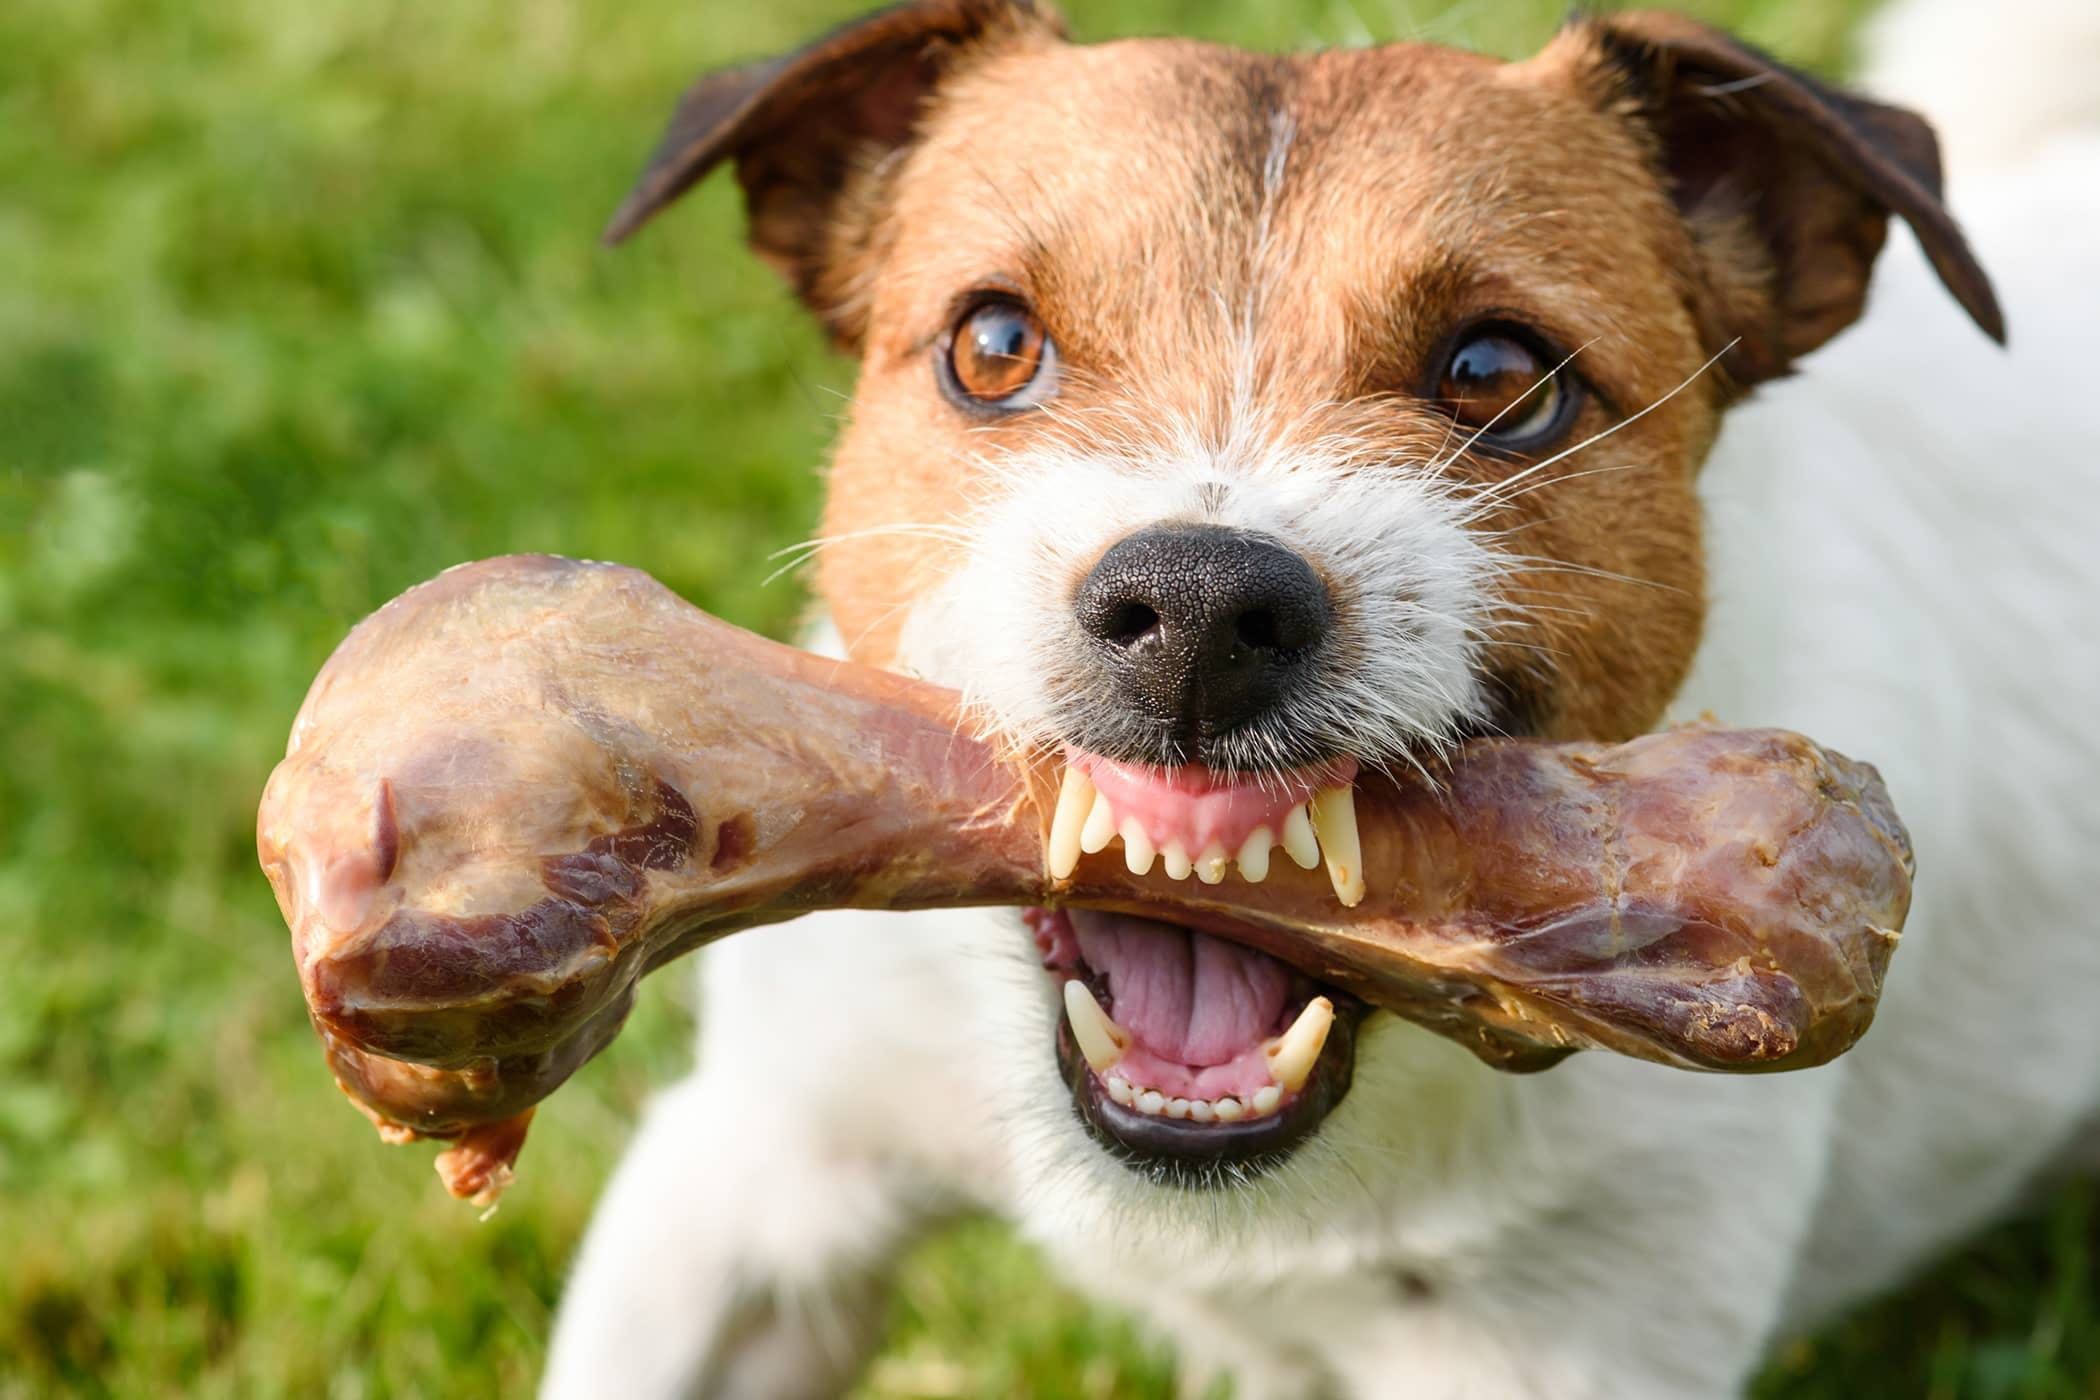 Dealing With Food Aggression In Dogs